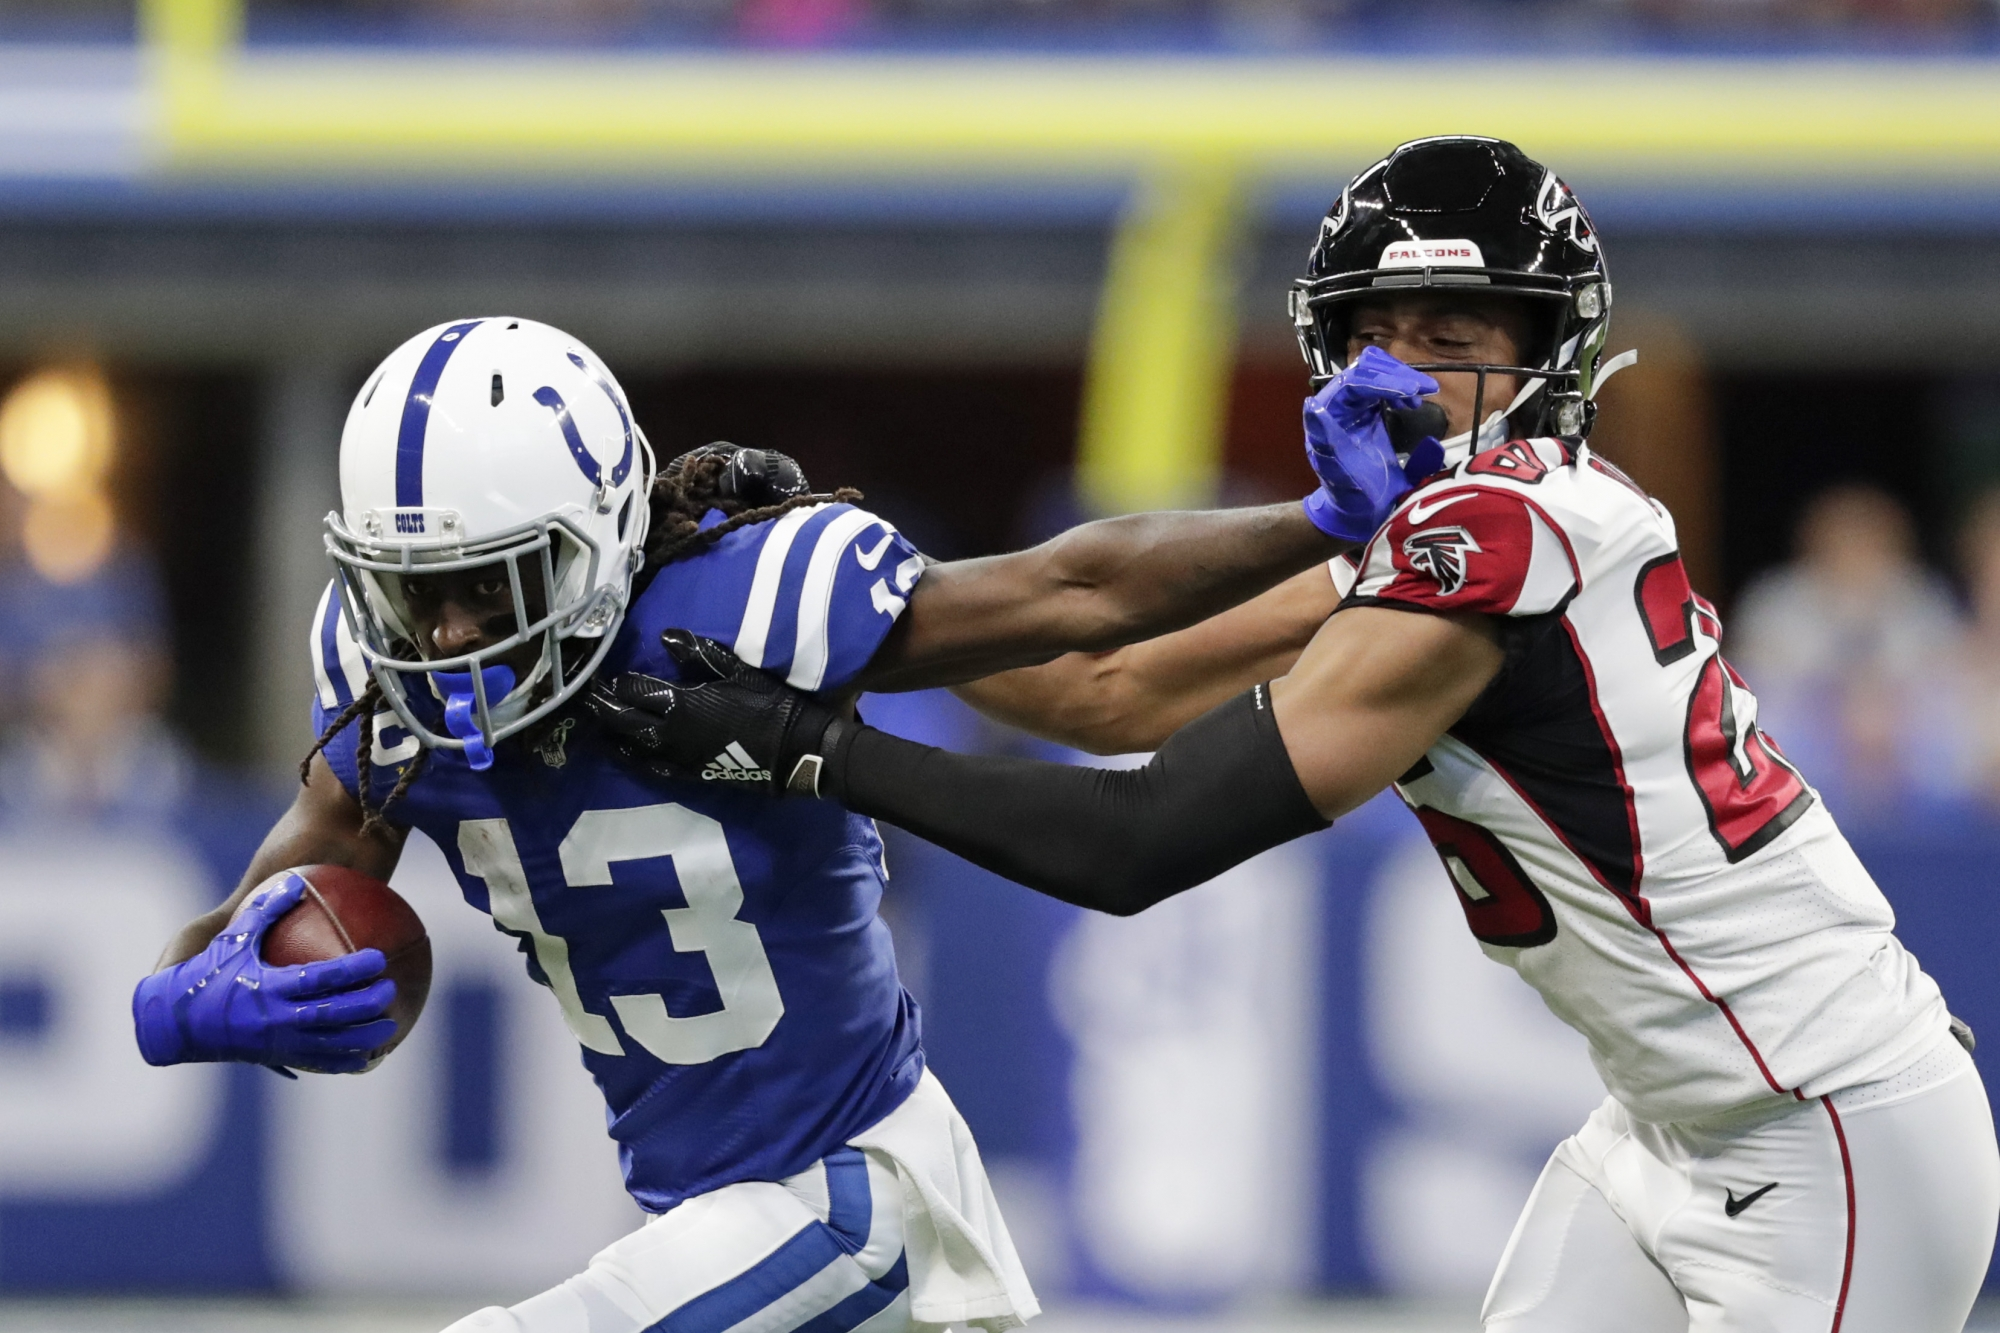 uk availability 6fae9 92576 Brissett's fast start helps Colts hold off Falcons 27-24   WTOP